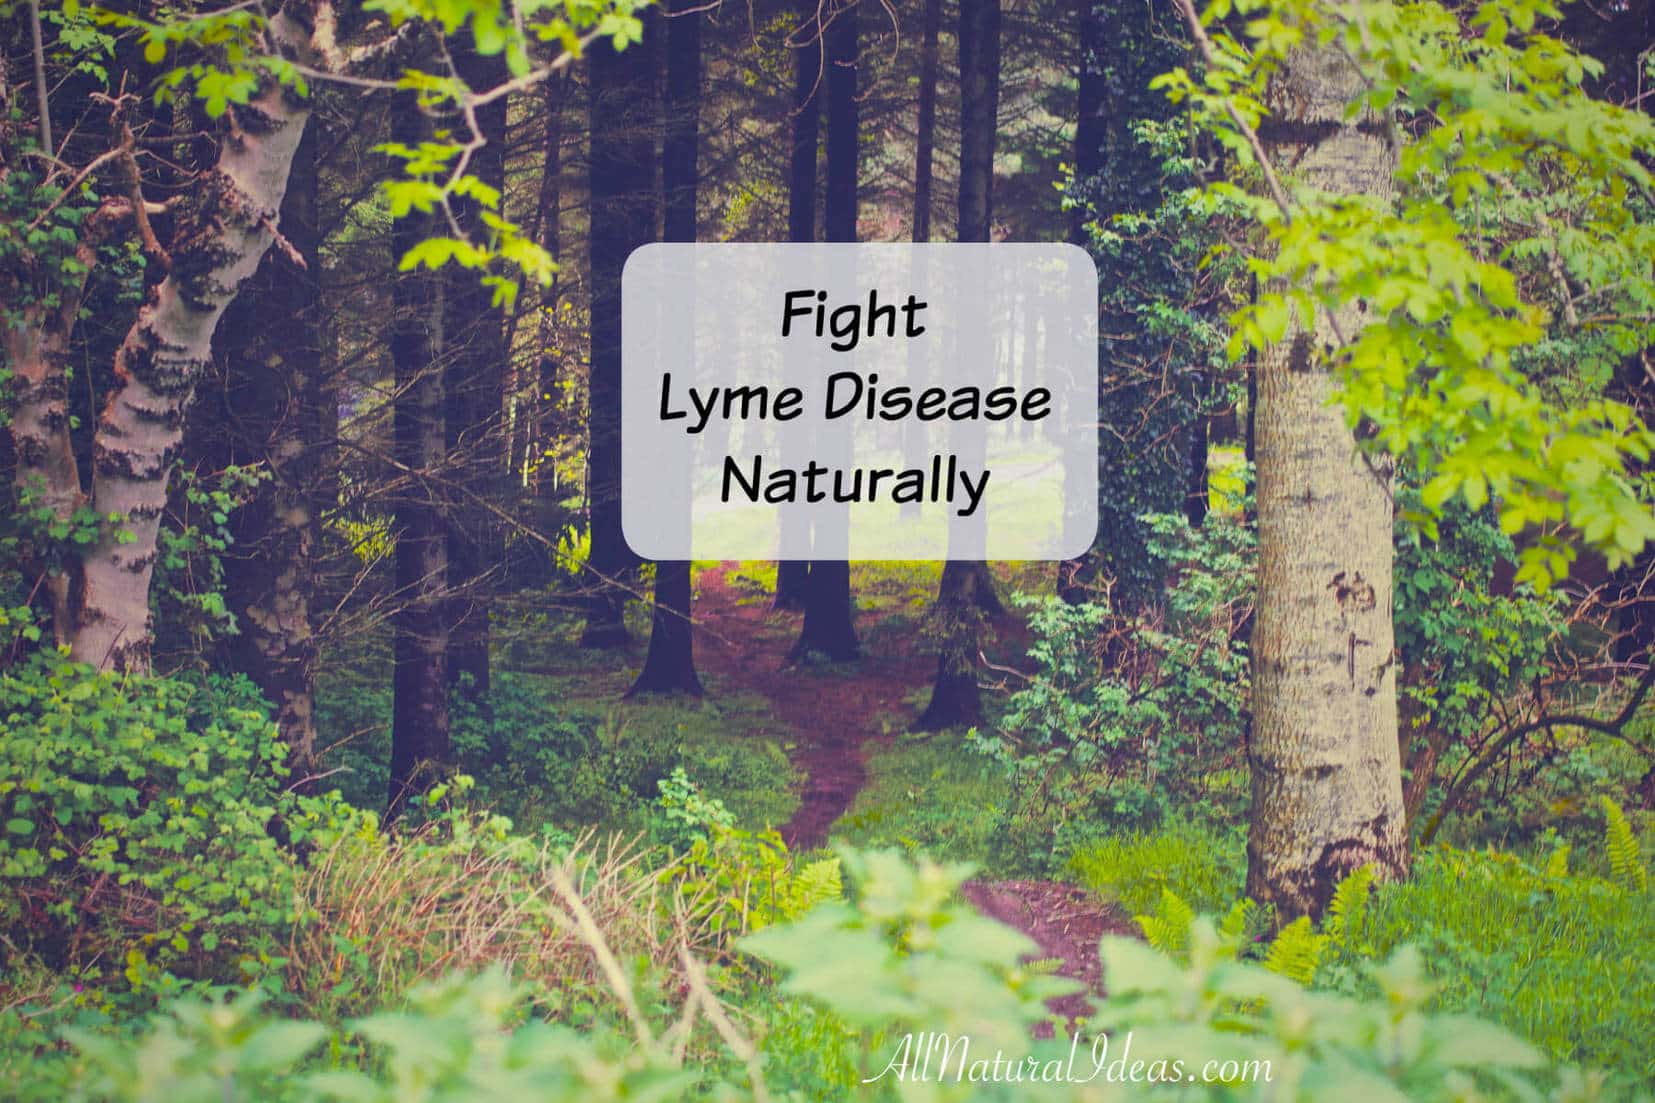 Are you looking to fight Lyme disease naturally? I had to fight Lyme too many times and I looked to natural remedies for a full recovery.